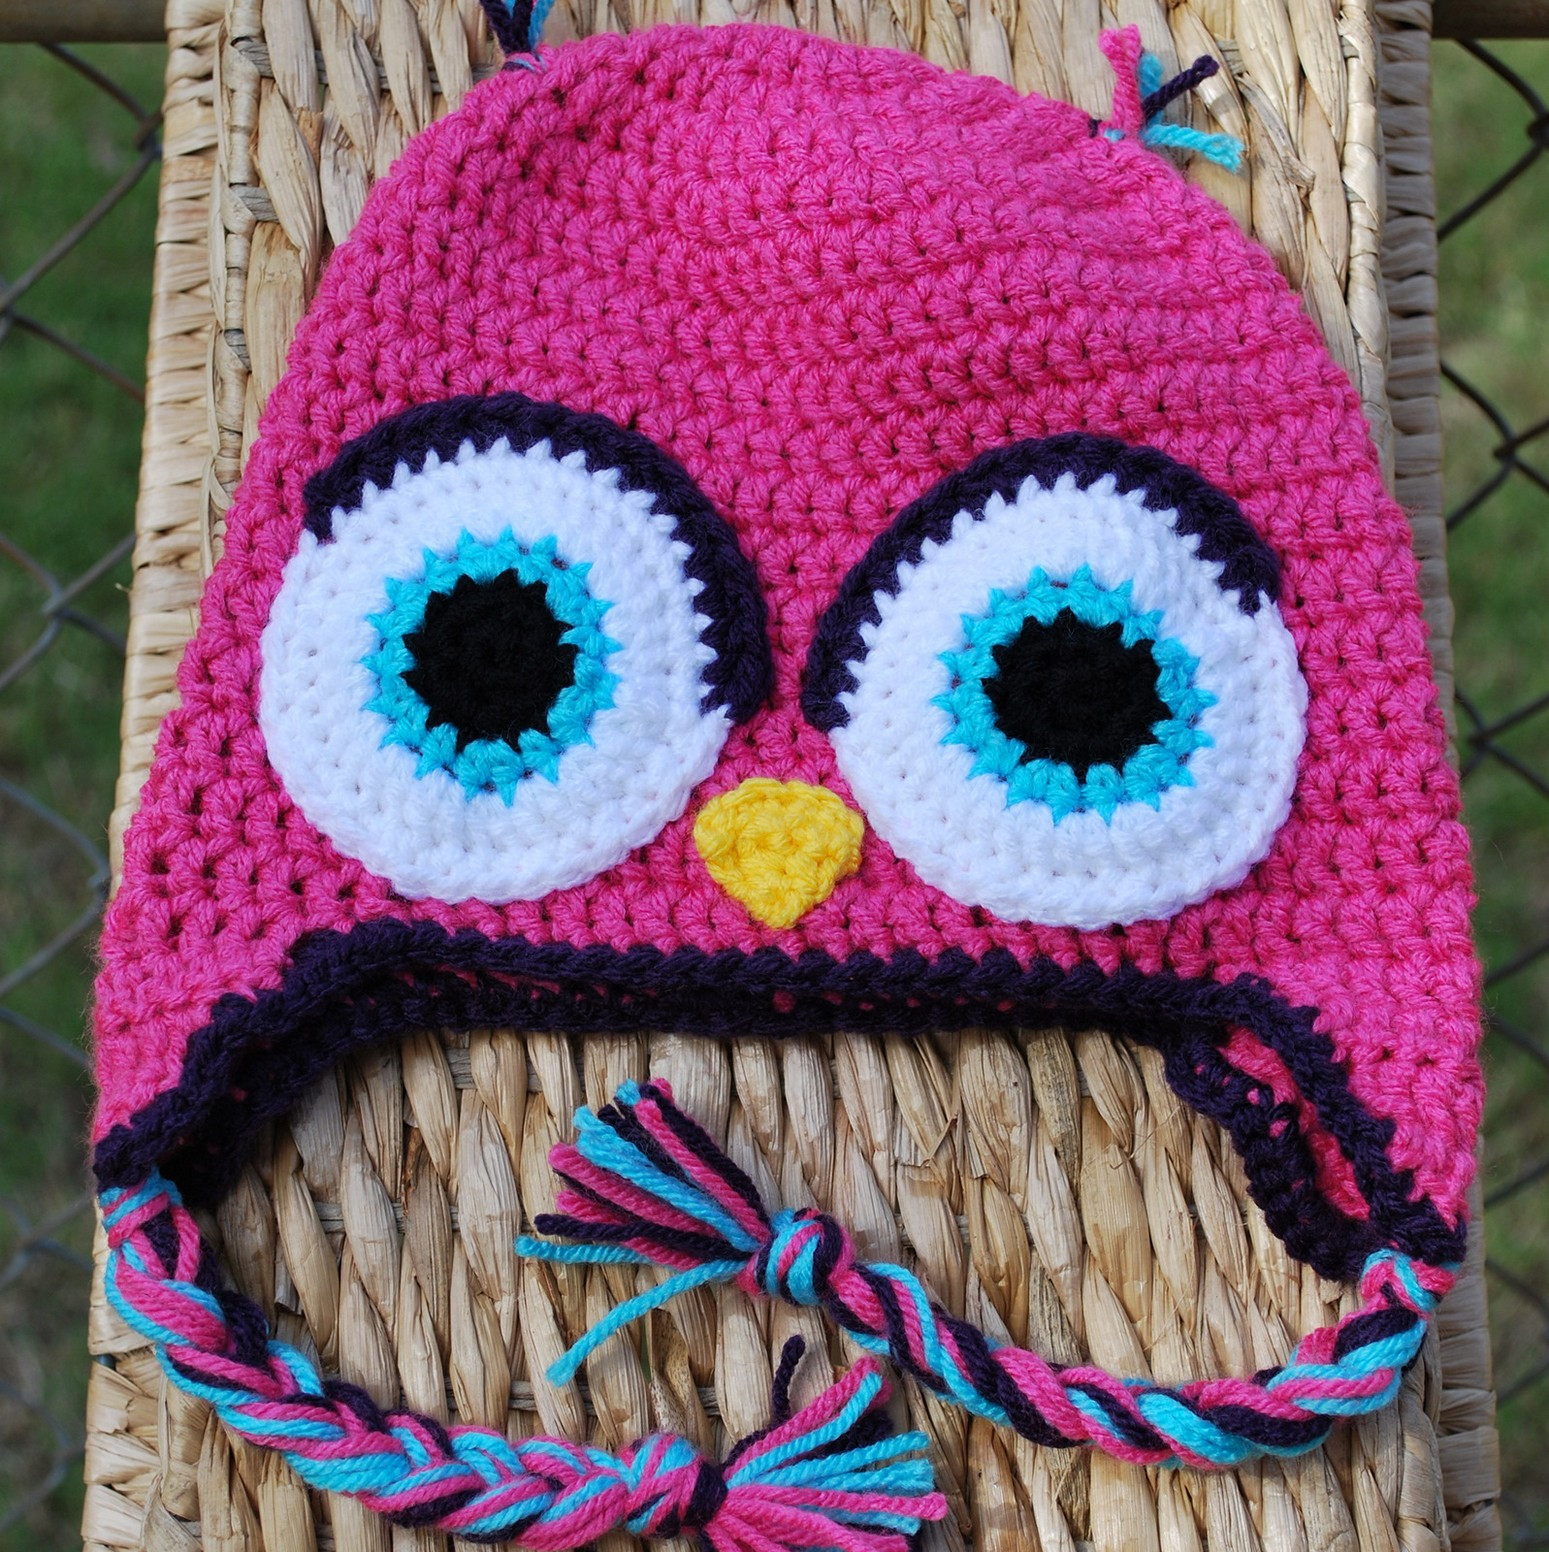 New Crochet Owl Pattern for Adorable and Cute Design Crochet Hat Patterns for Adults Of Fresh Give A Hoot Crocheted Hat Free Pattern for Kids and Adult Crochet Hat Patterns for Adults